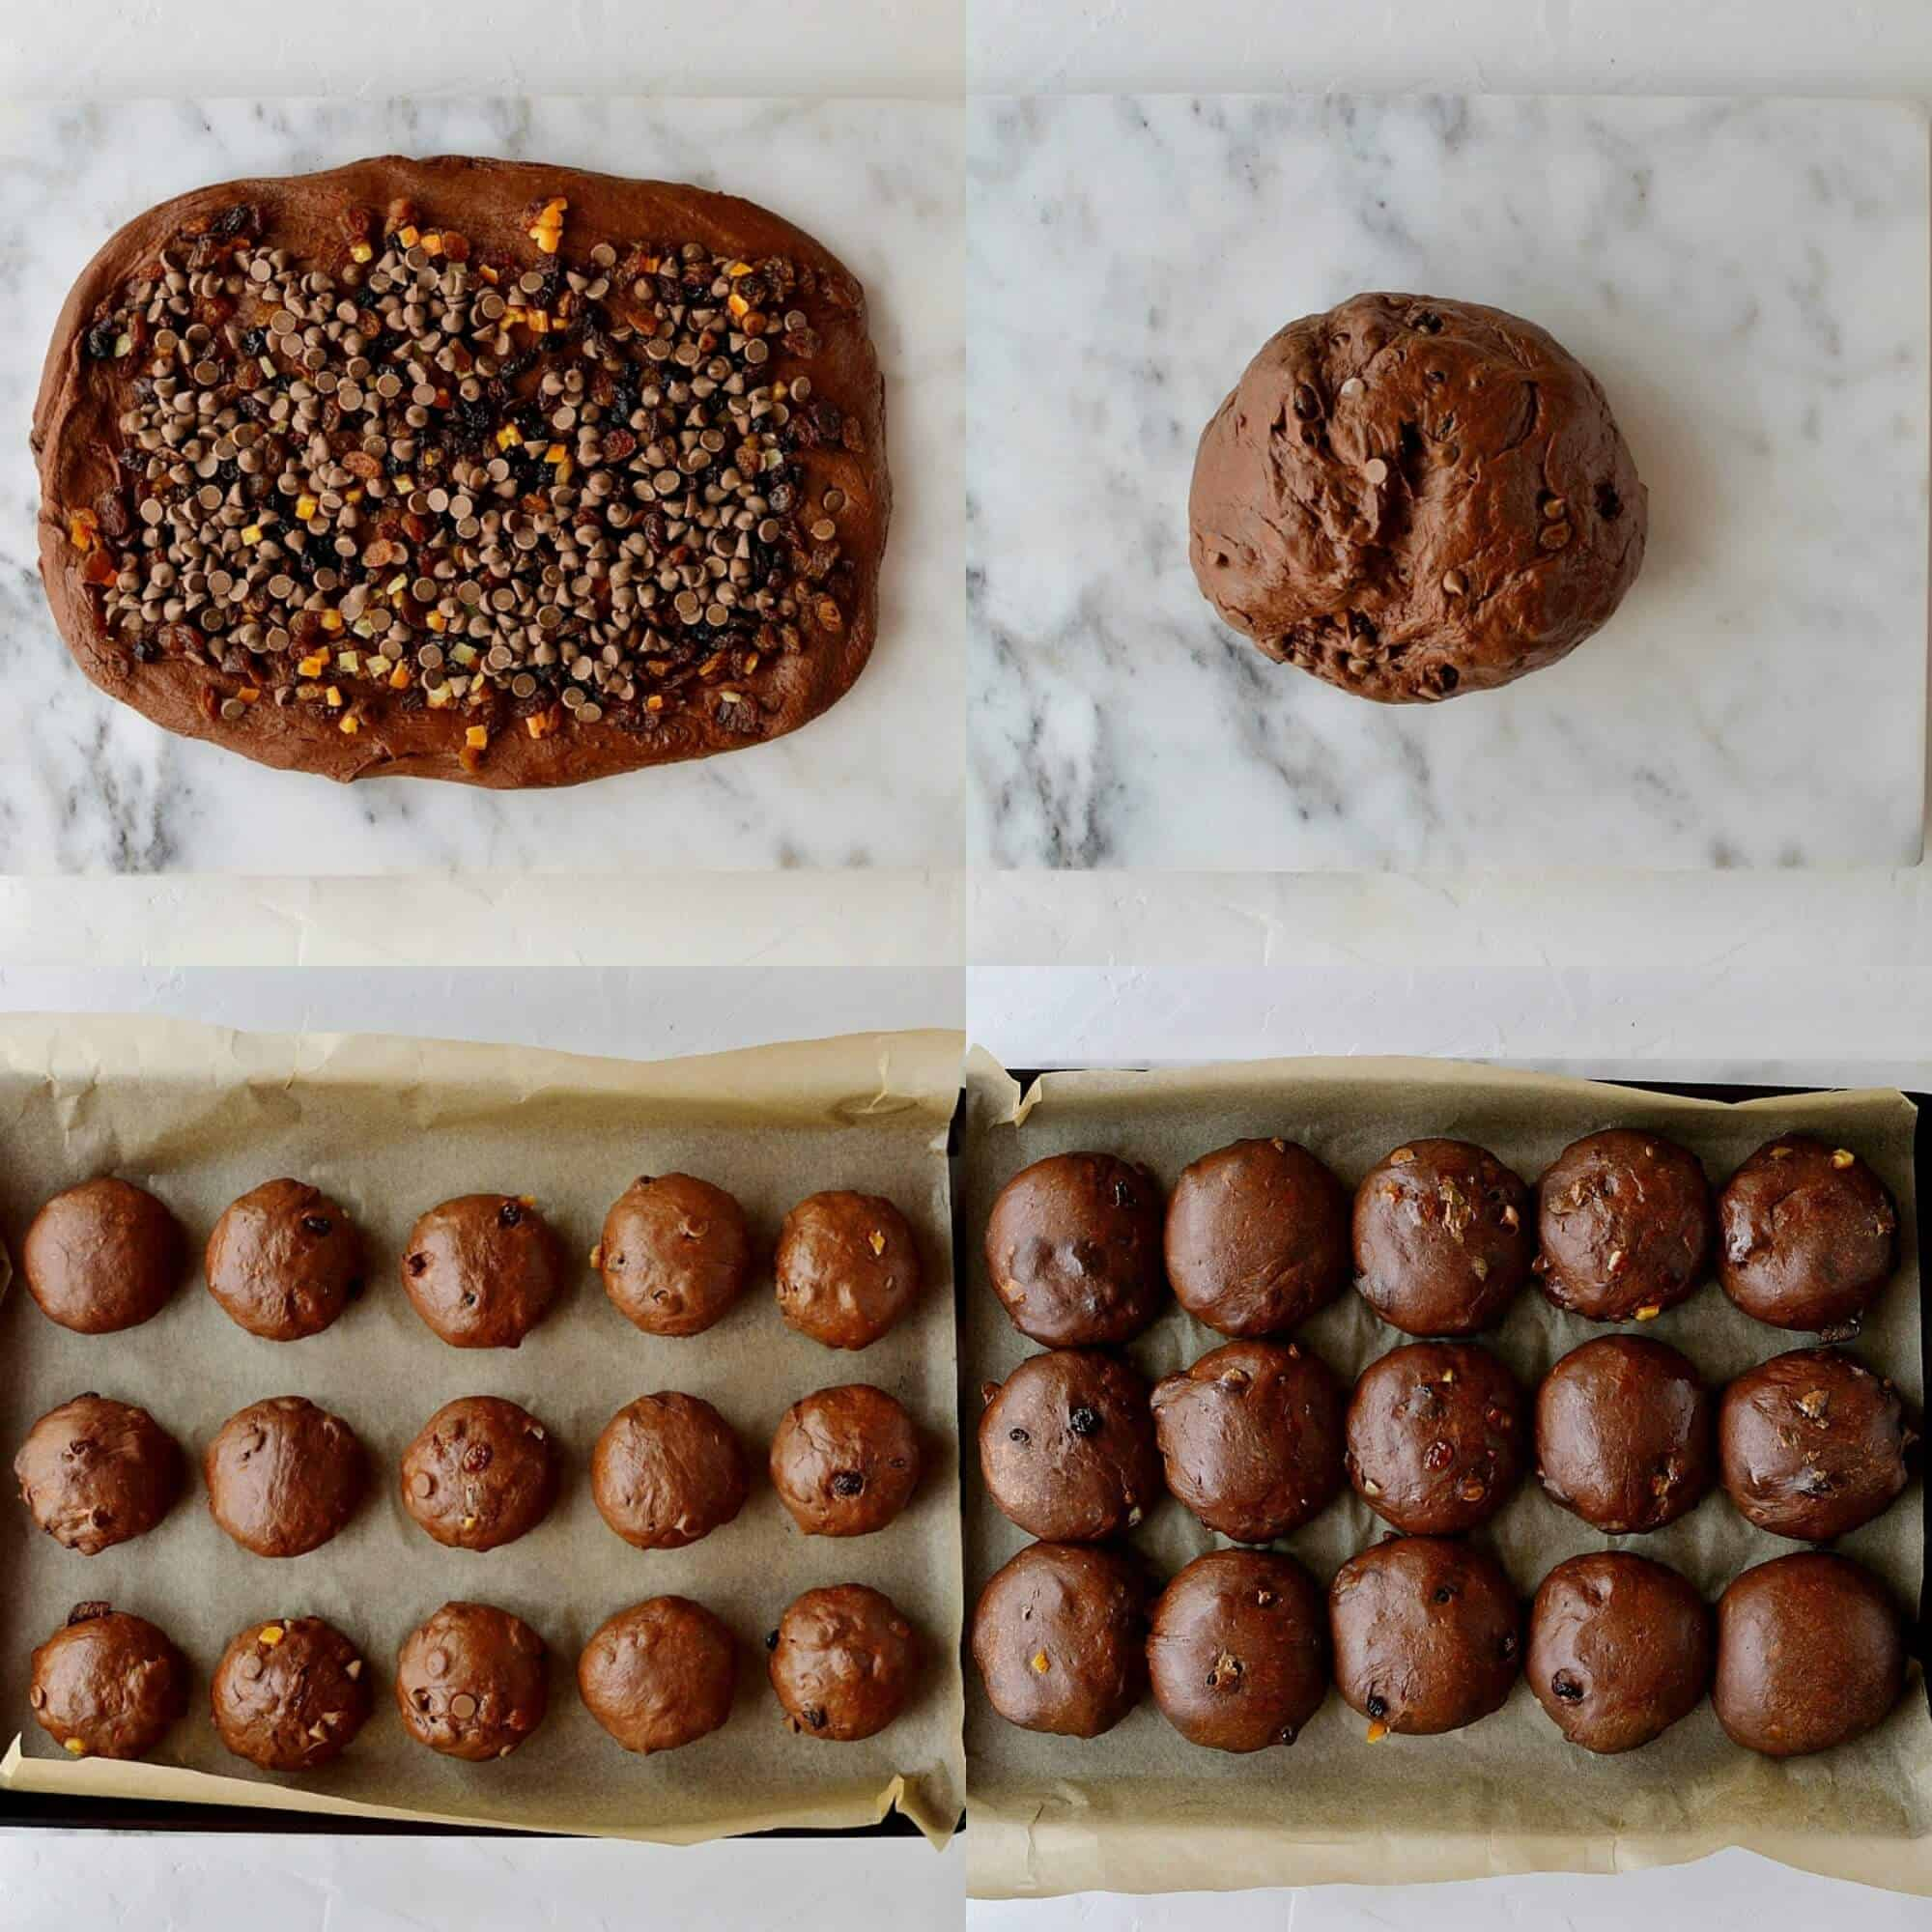 Step 4 - adding the chocolate chips, forming the buns and letting them rise